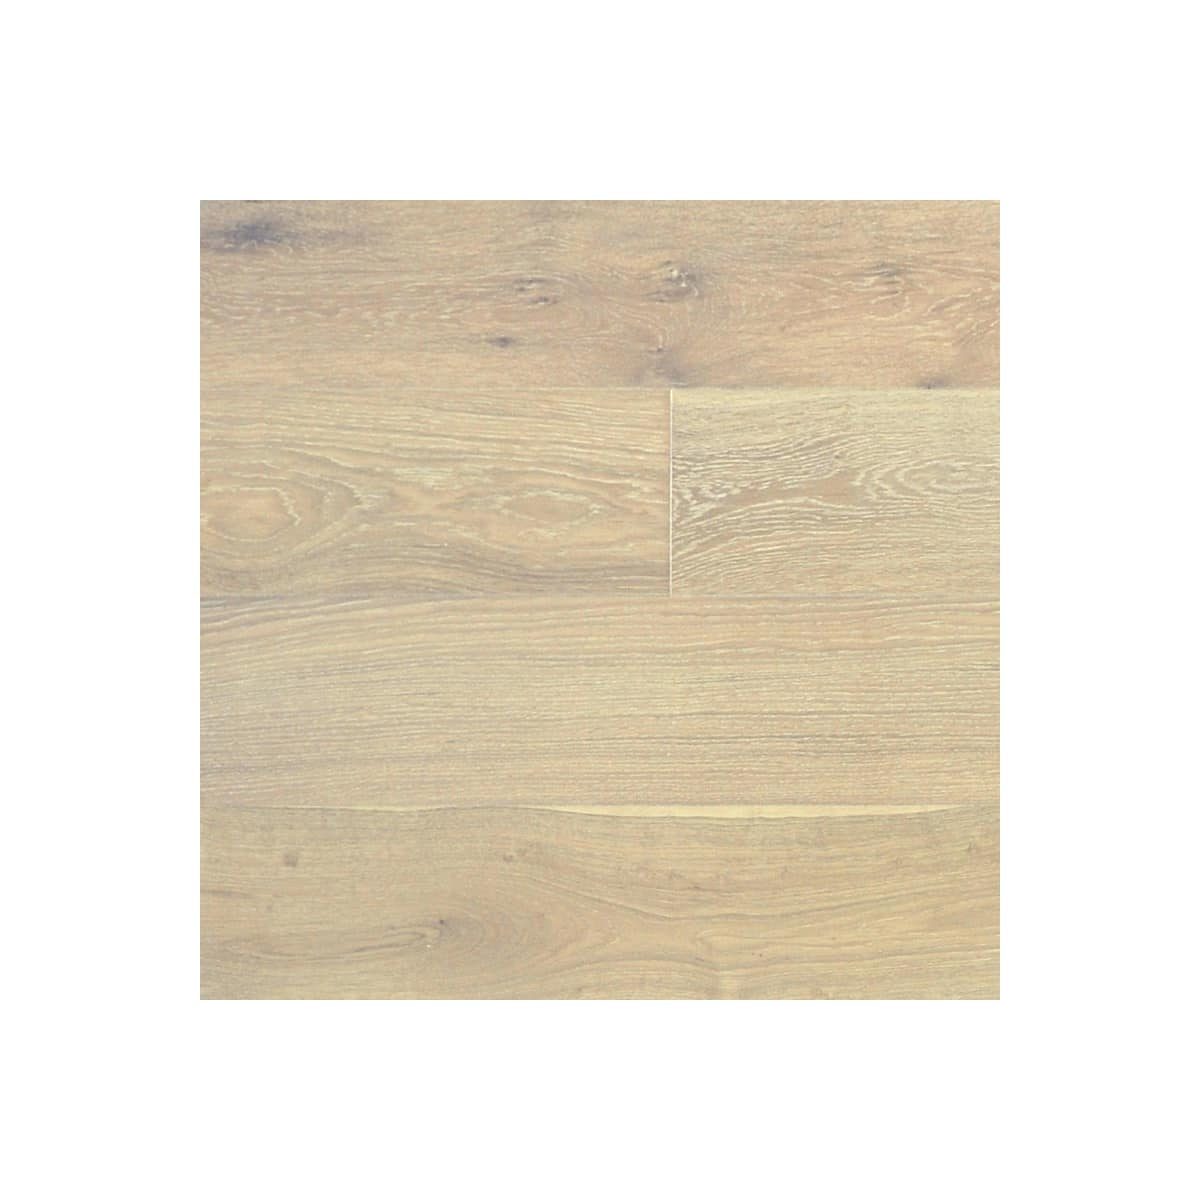 Mieseno White Oak Prefinished Hardwood Flooring - Come discover more French Farmhouse Decor inspired by Fixer Upper and click here to Get the Look of The Club House Kitchen & Sun Room. #fixerupper #joannagaines #kitchendecor #frenchfarmhouse